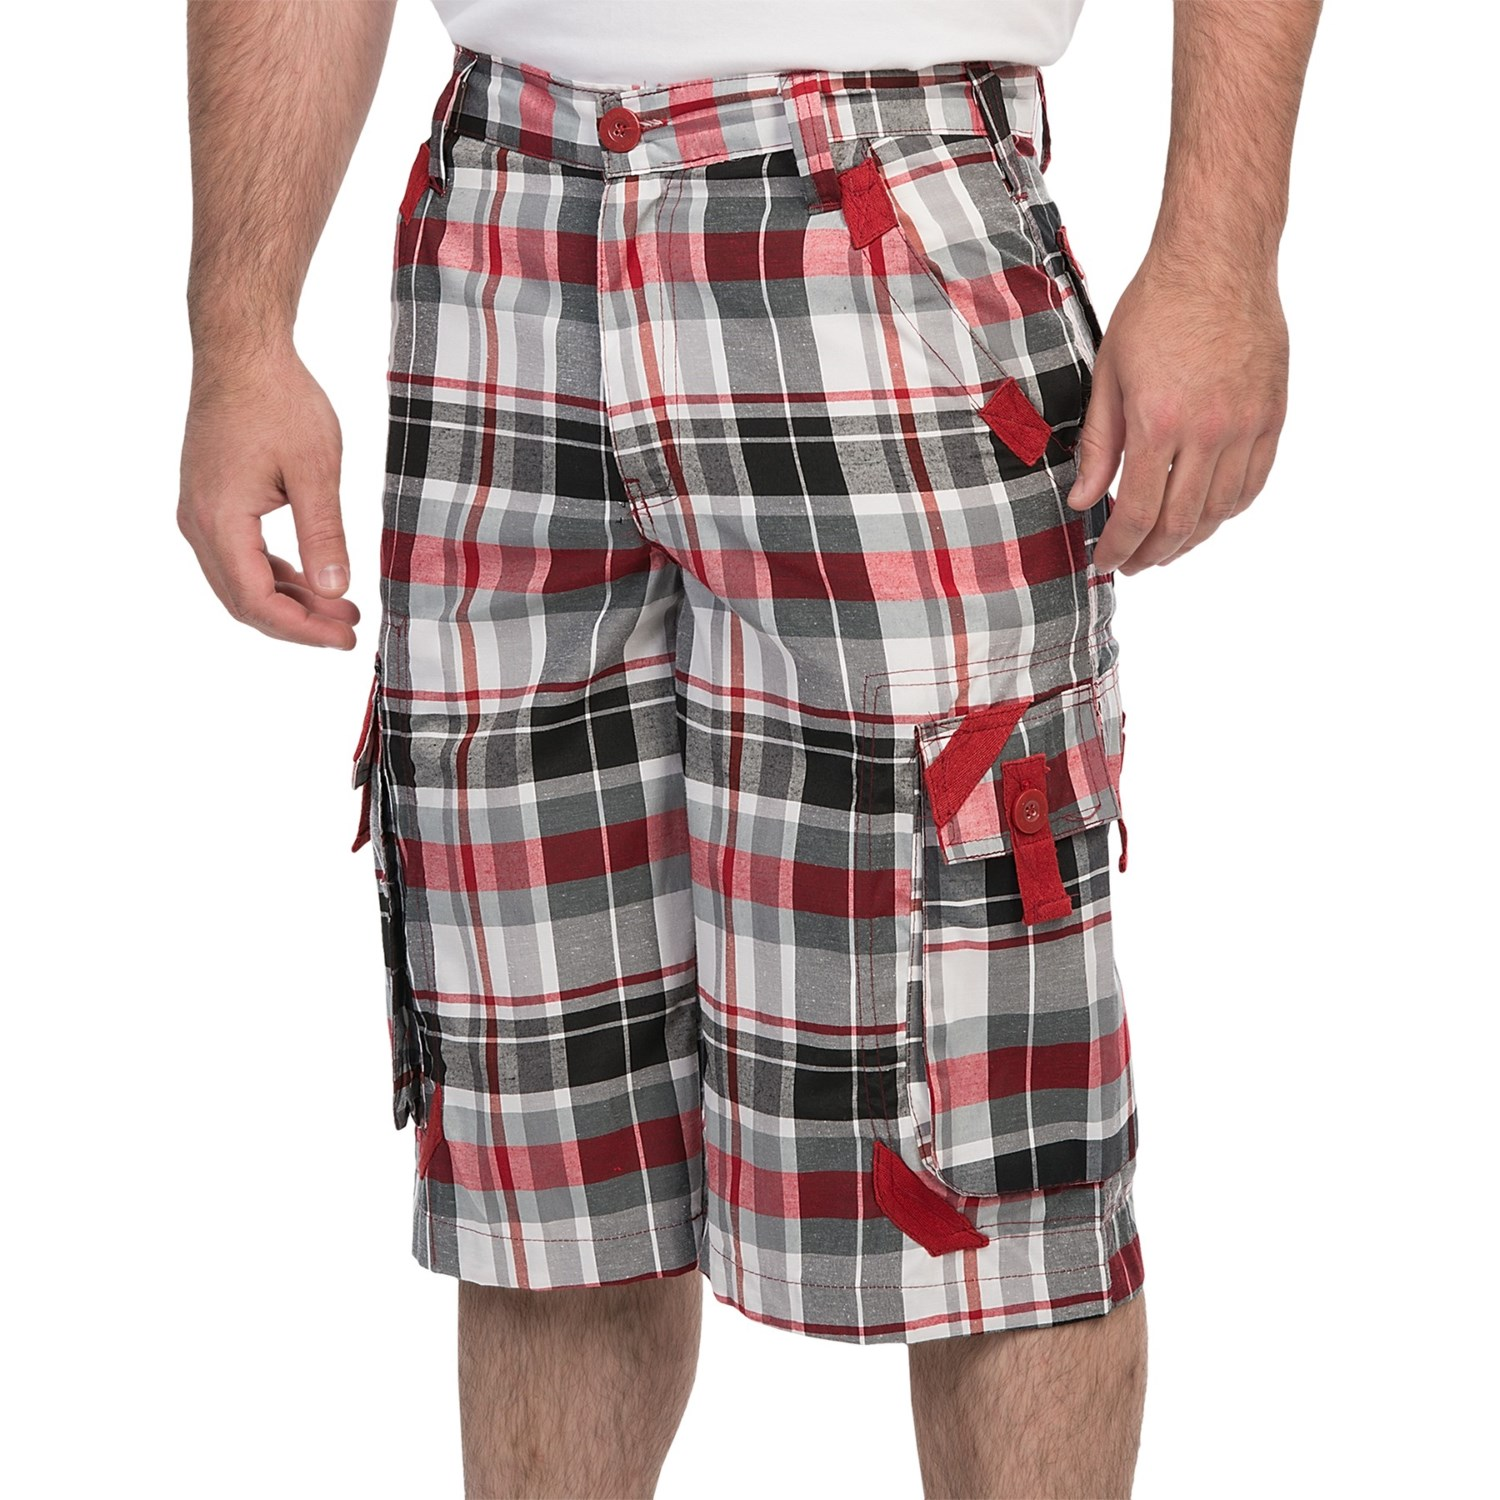 Shop for plaid shorts men online at Target. Free shipping on purchases over $35 and save 5% every day with your Target REDcard.